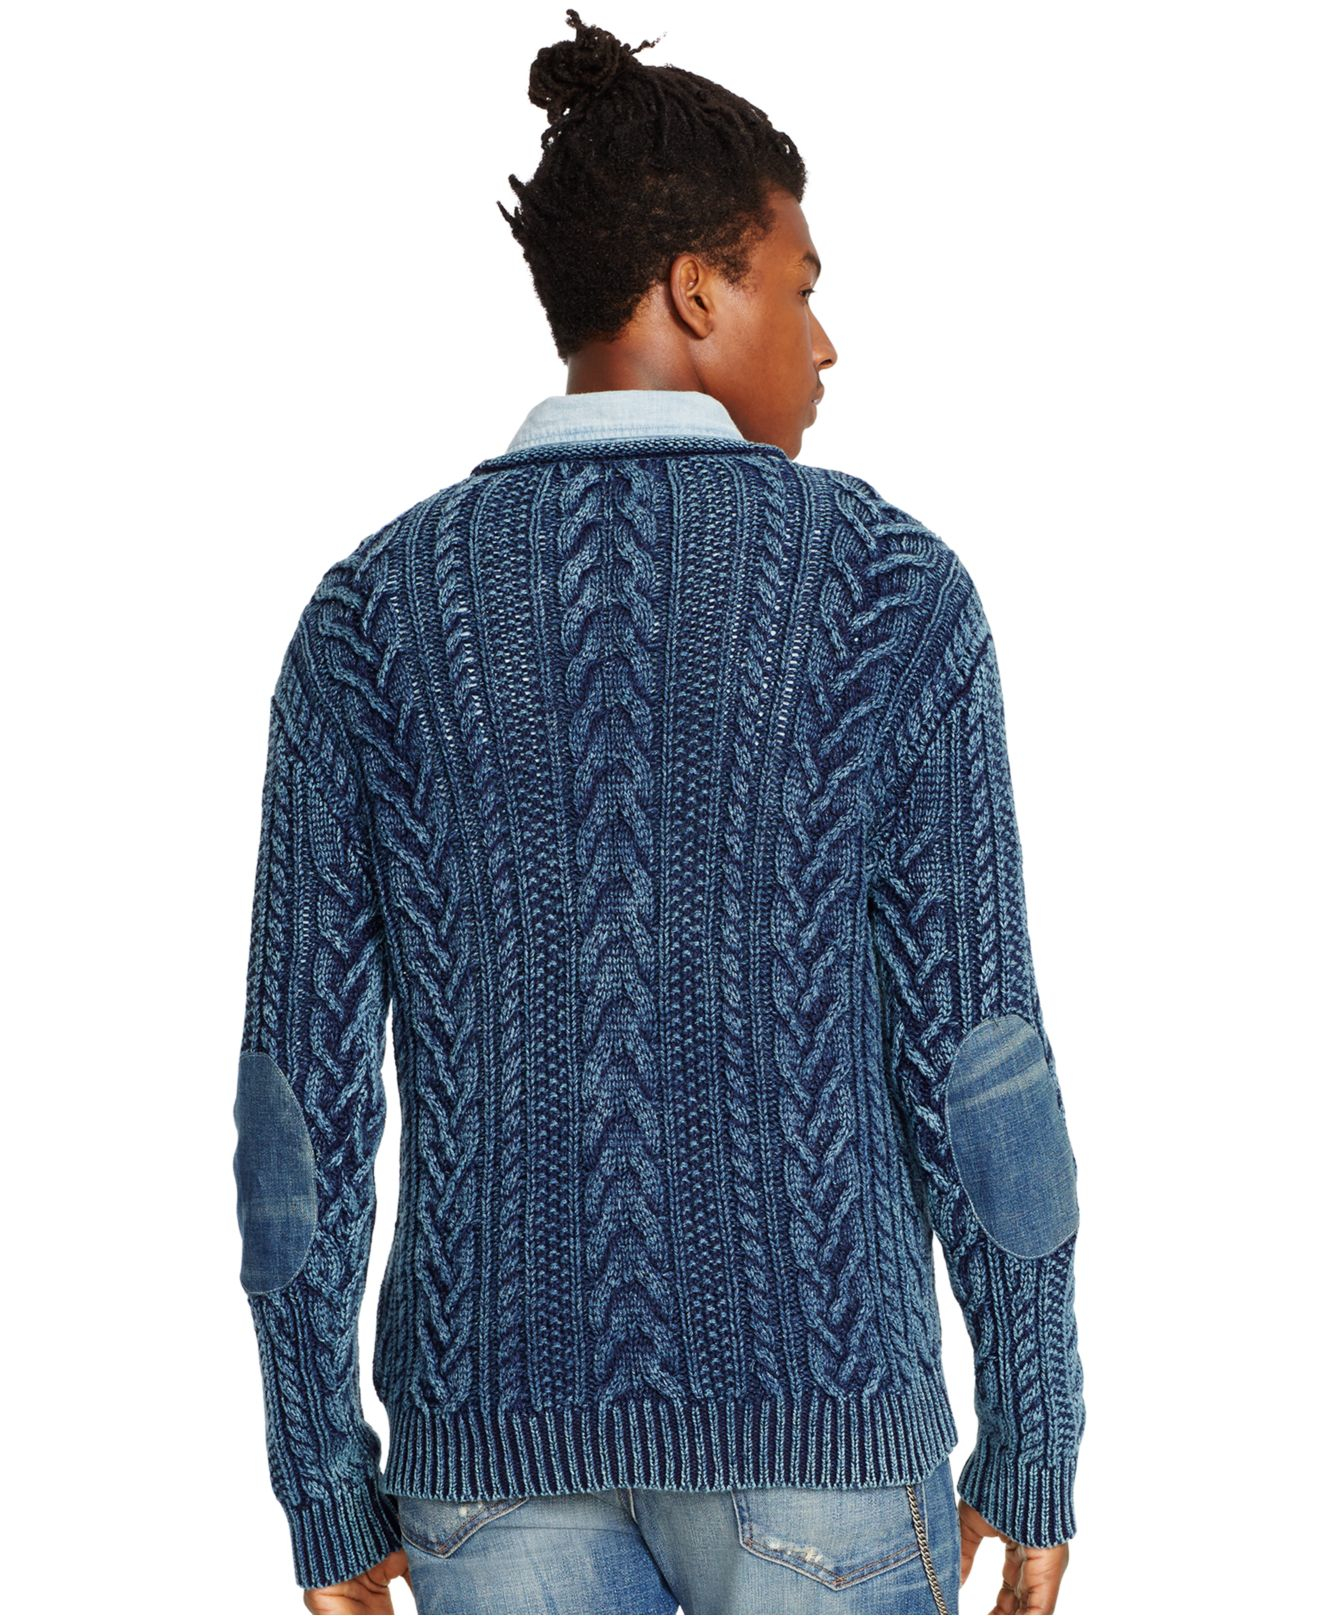 Denim & supply ralph lauren Men's Cable-knit Cotton Sweater in ...